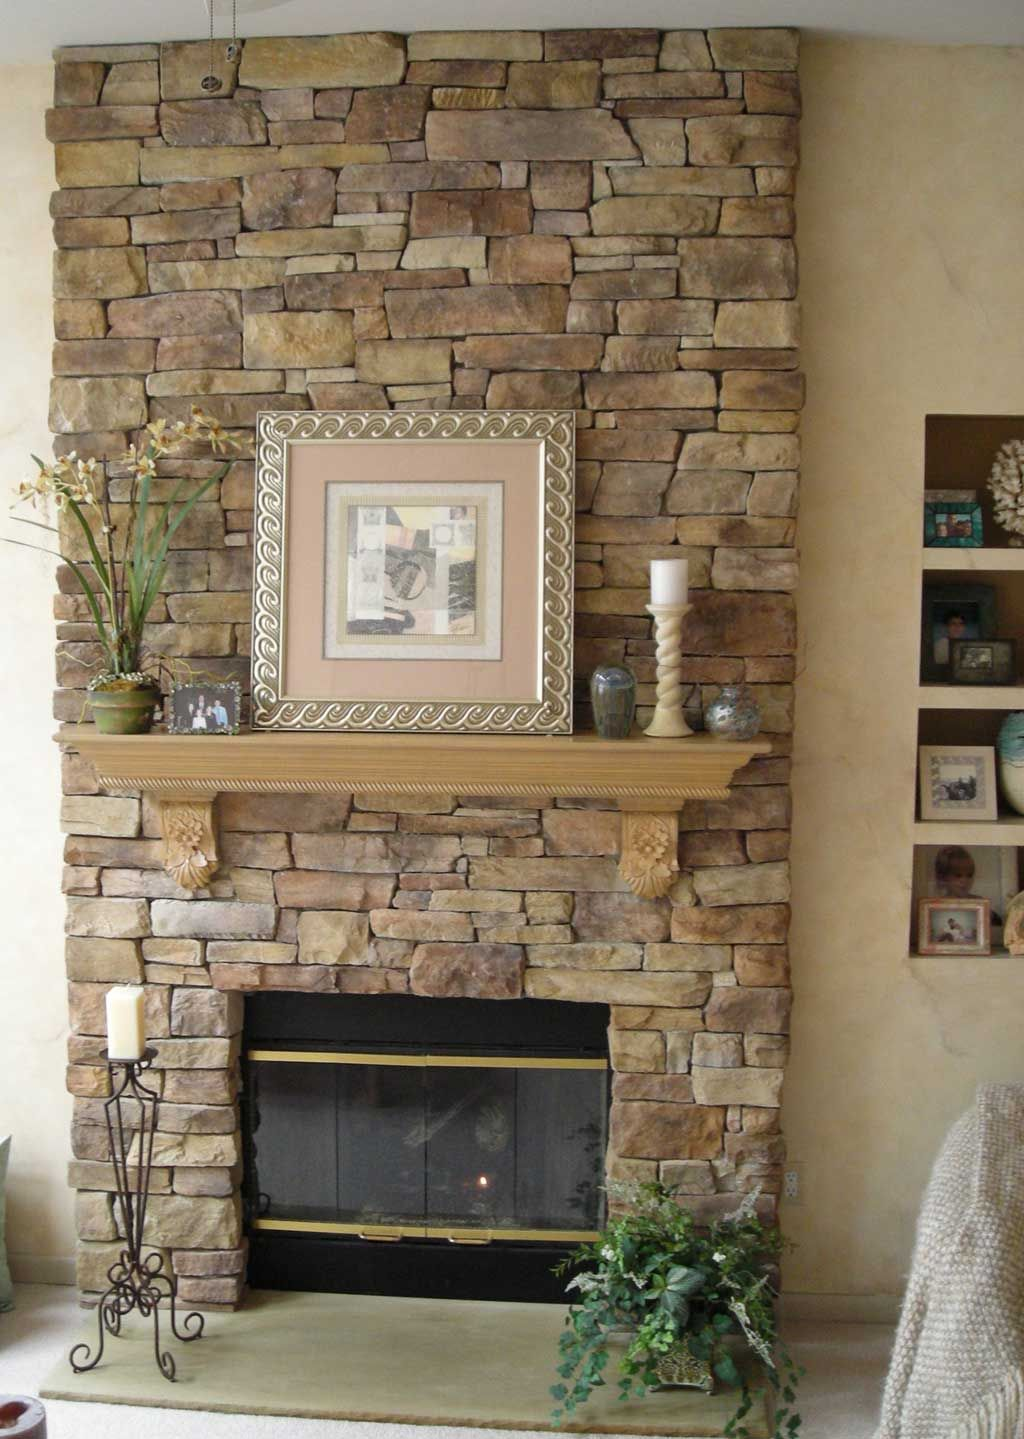 Fireplace Design Images New Stone Veneer Fireplace Design Fireplace In 2019